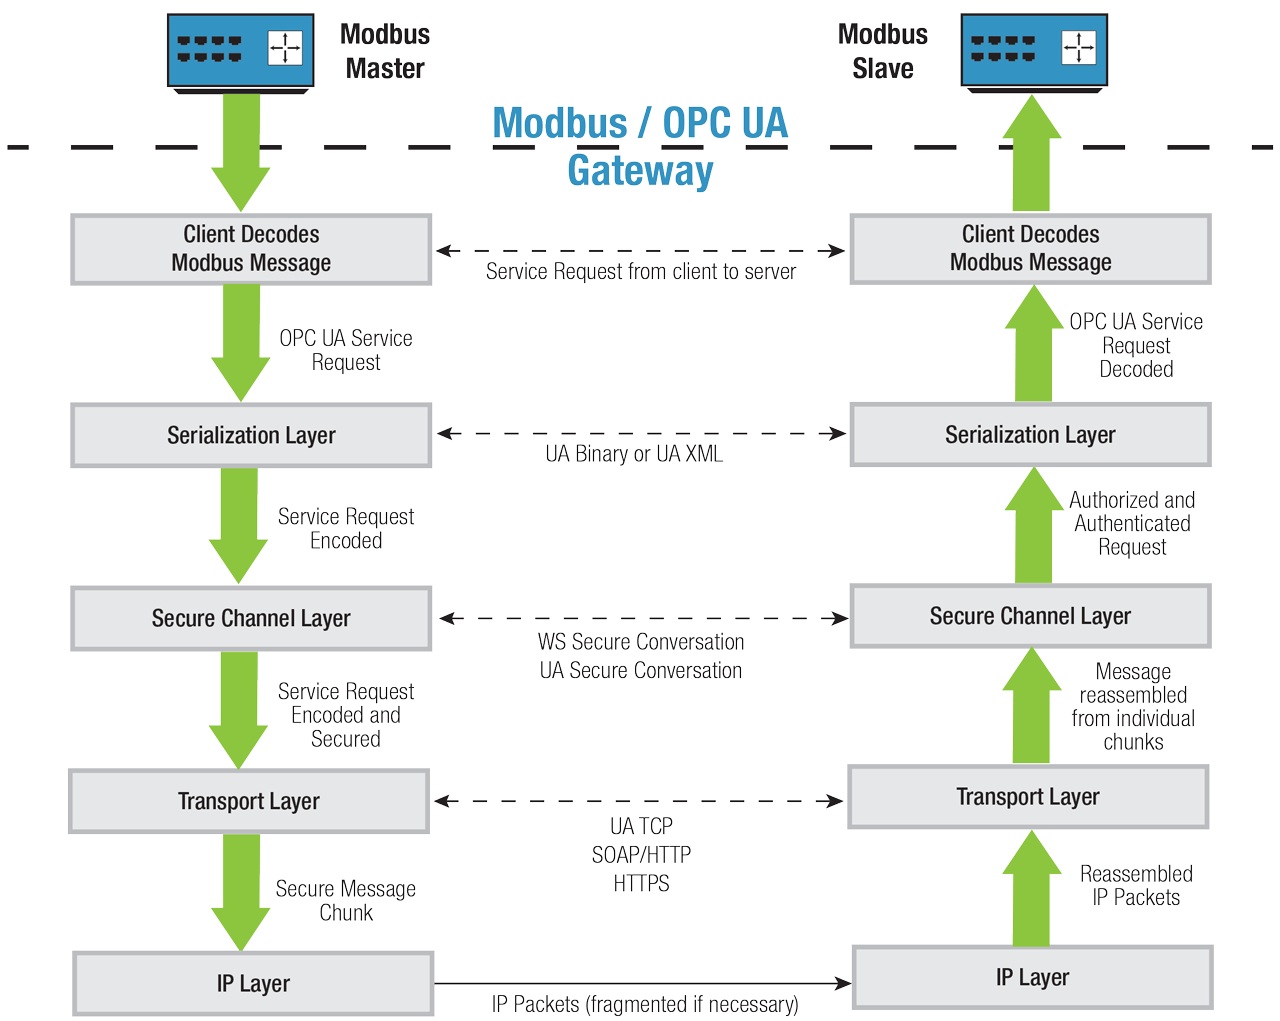 Using a Modbus / OPC UA gateway to transport Modbus data.